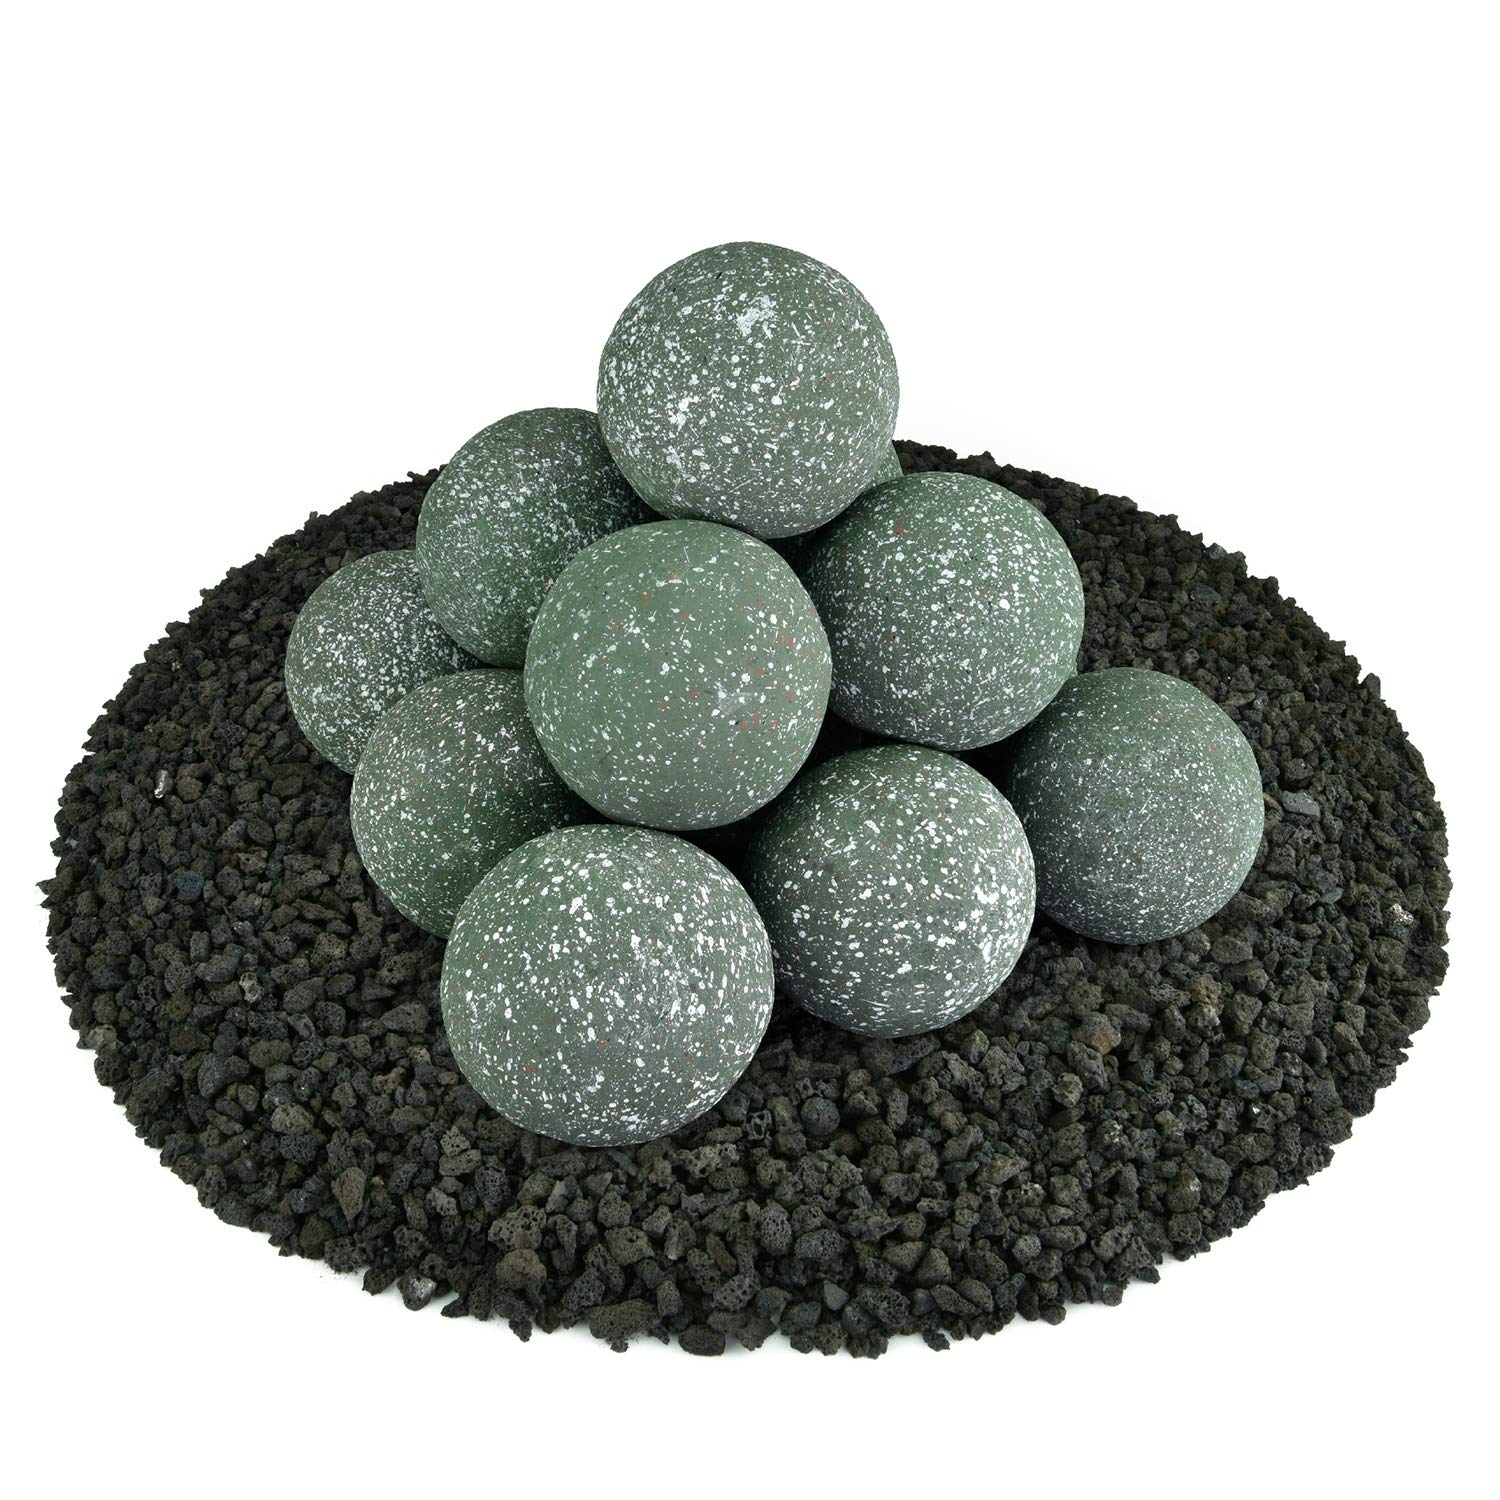 Ceramic Fire Balls | Set of 14 | Modern Accessory for Indoor and Outdoor Fire Pits or Fireplaces – Brushed Concrete Look | Slate Green, Speckled, 4 Inch